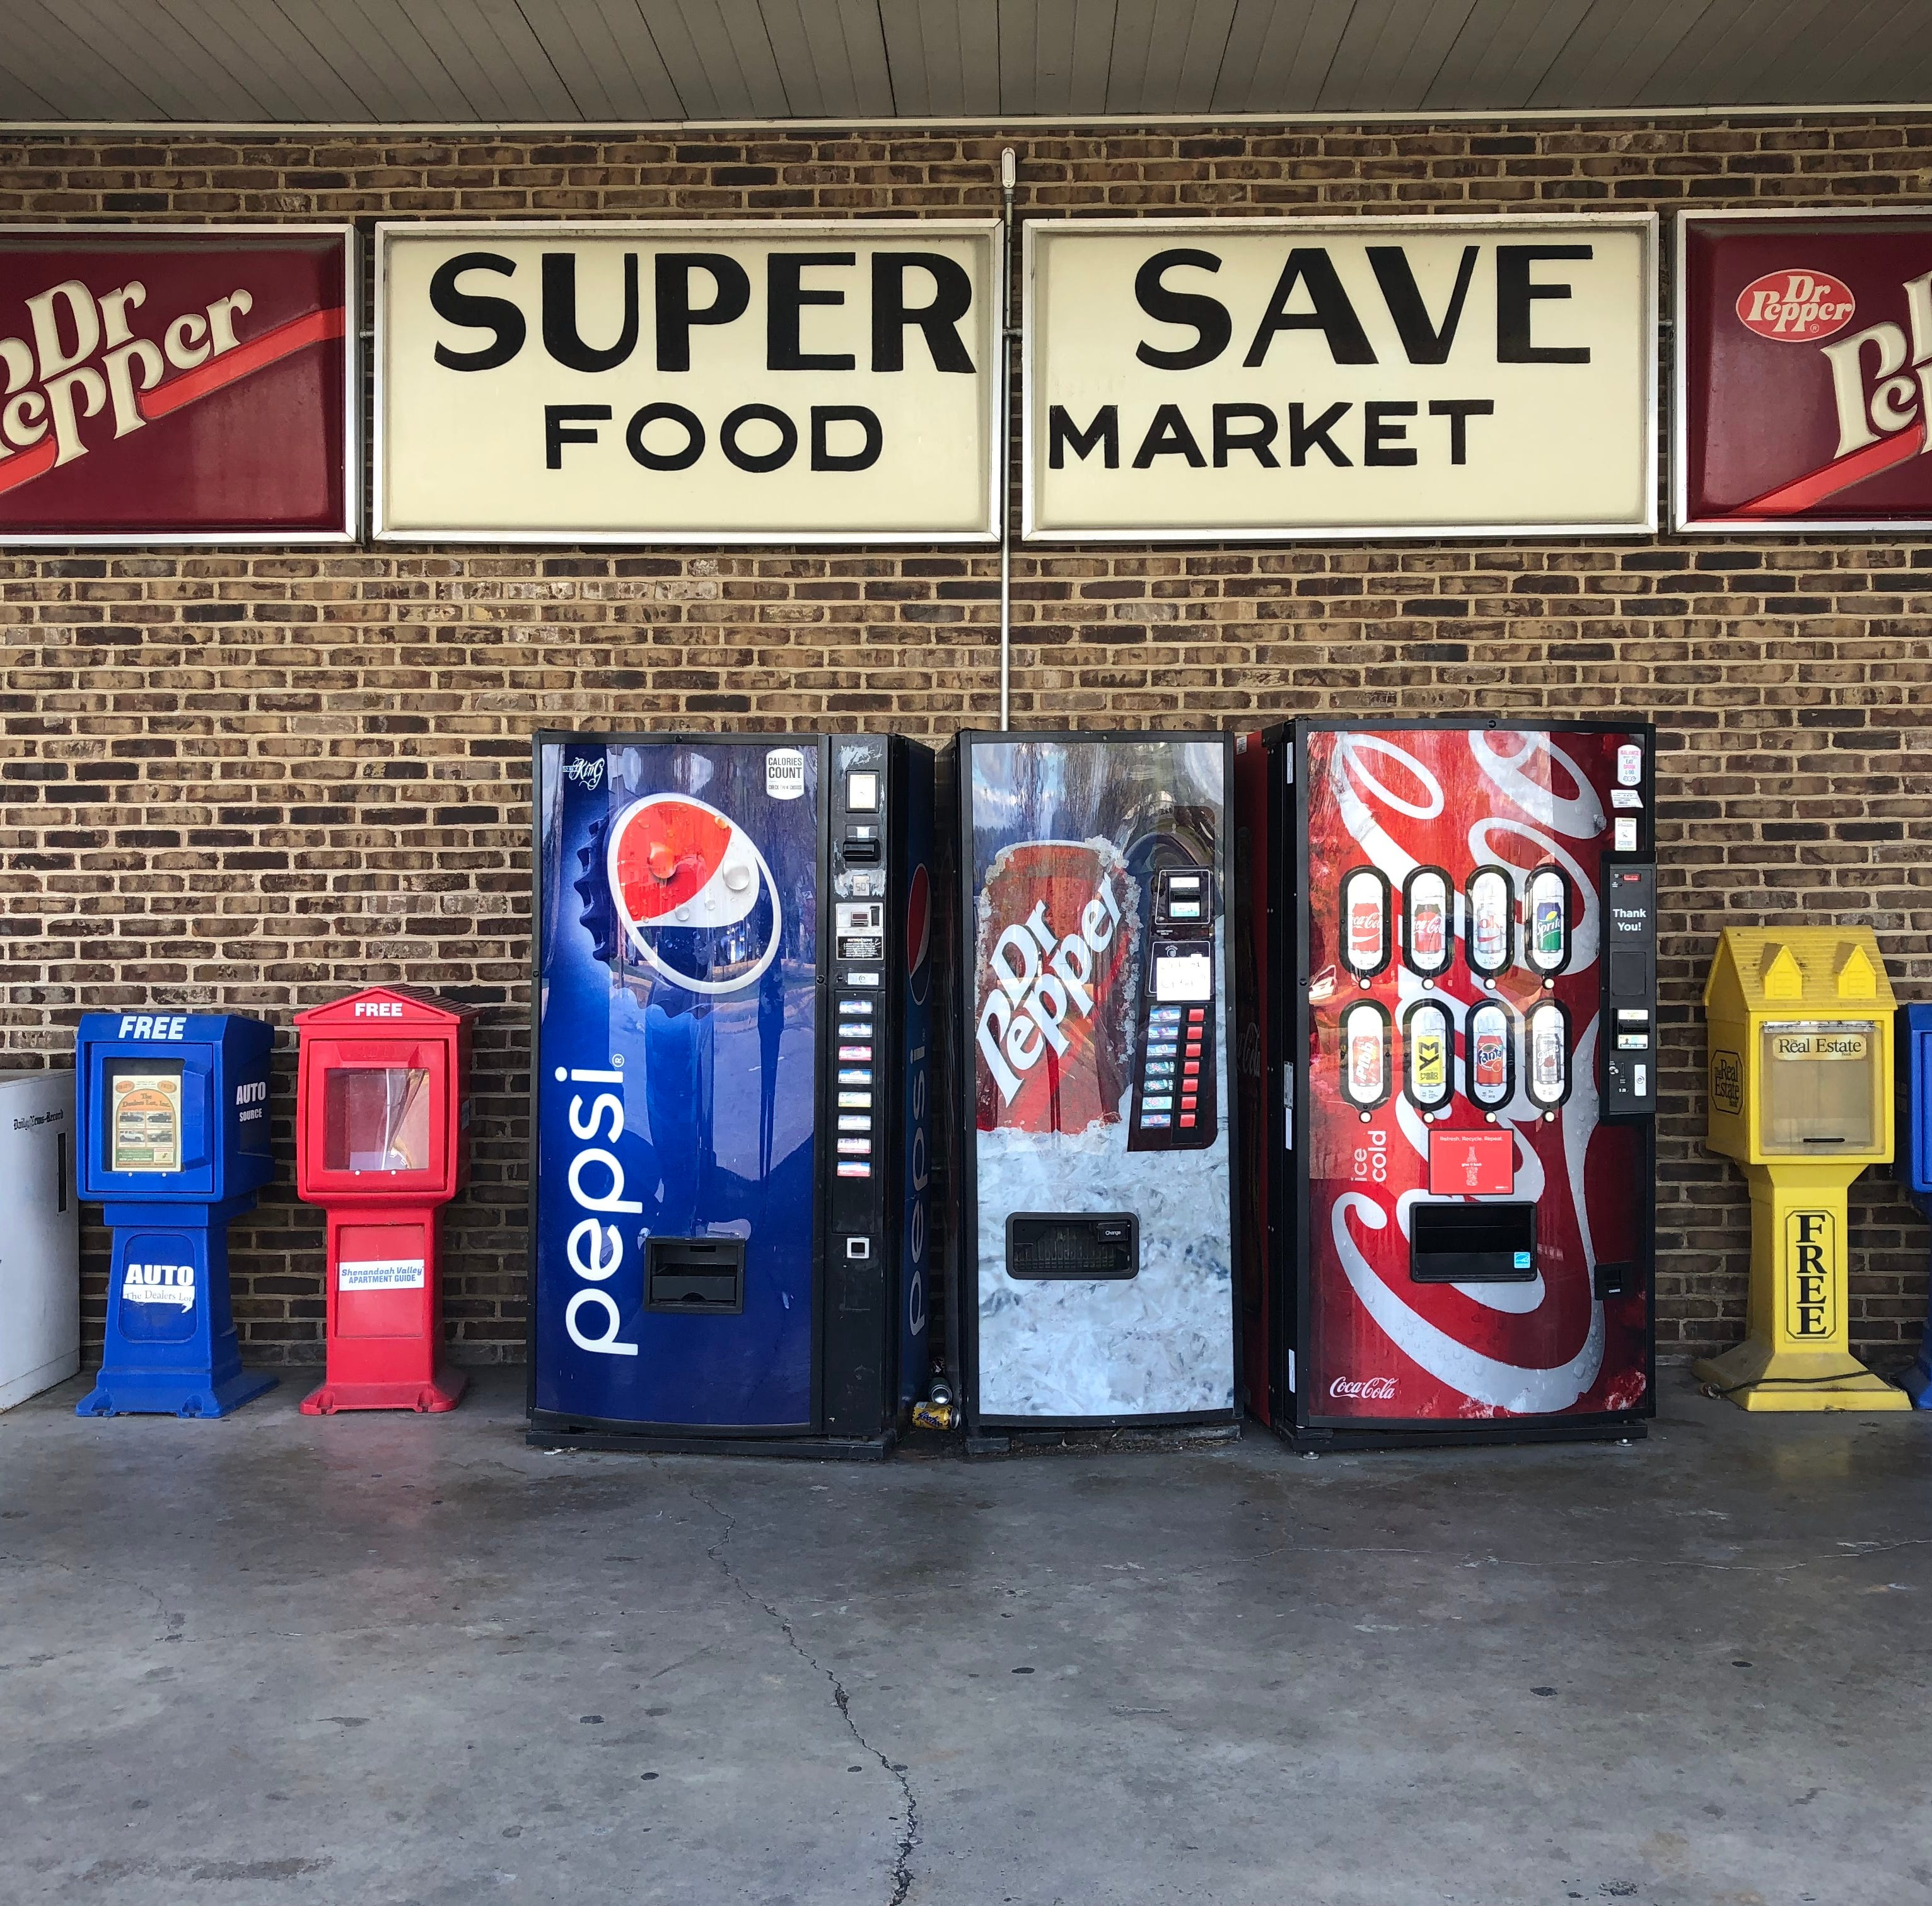 Weyers Cave Super Save up for sale after 34 years in the community